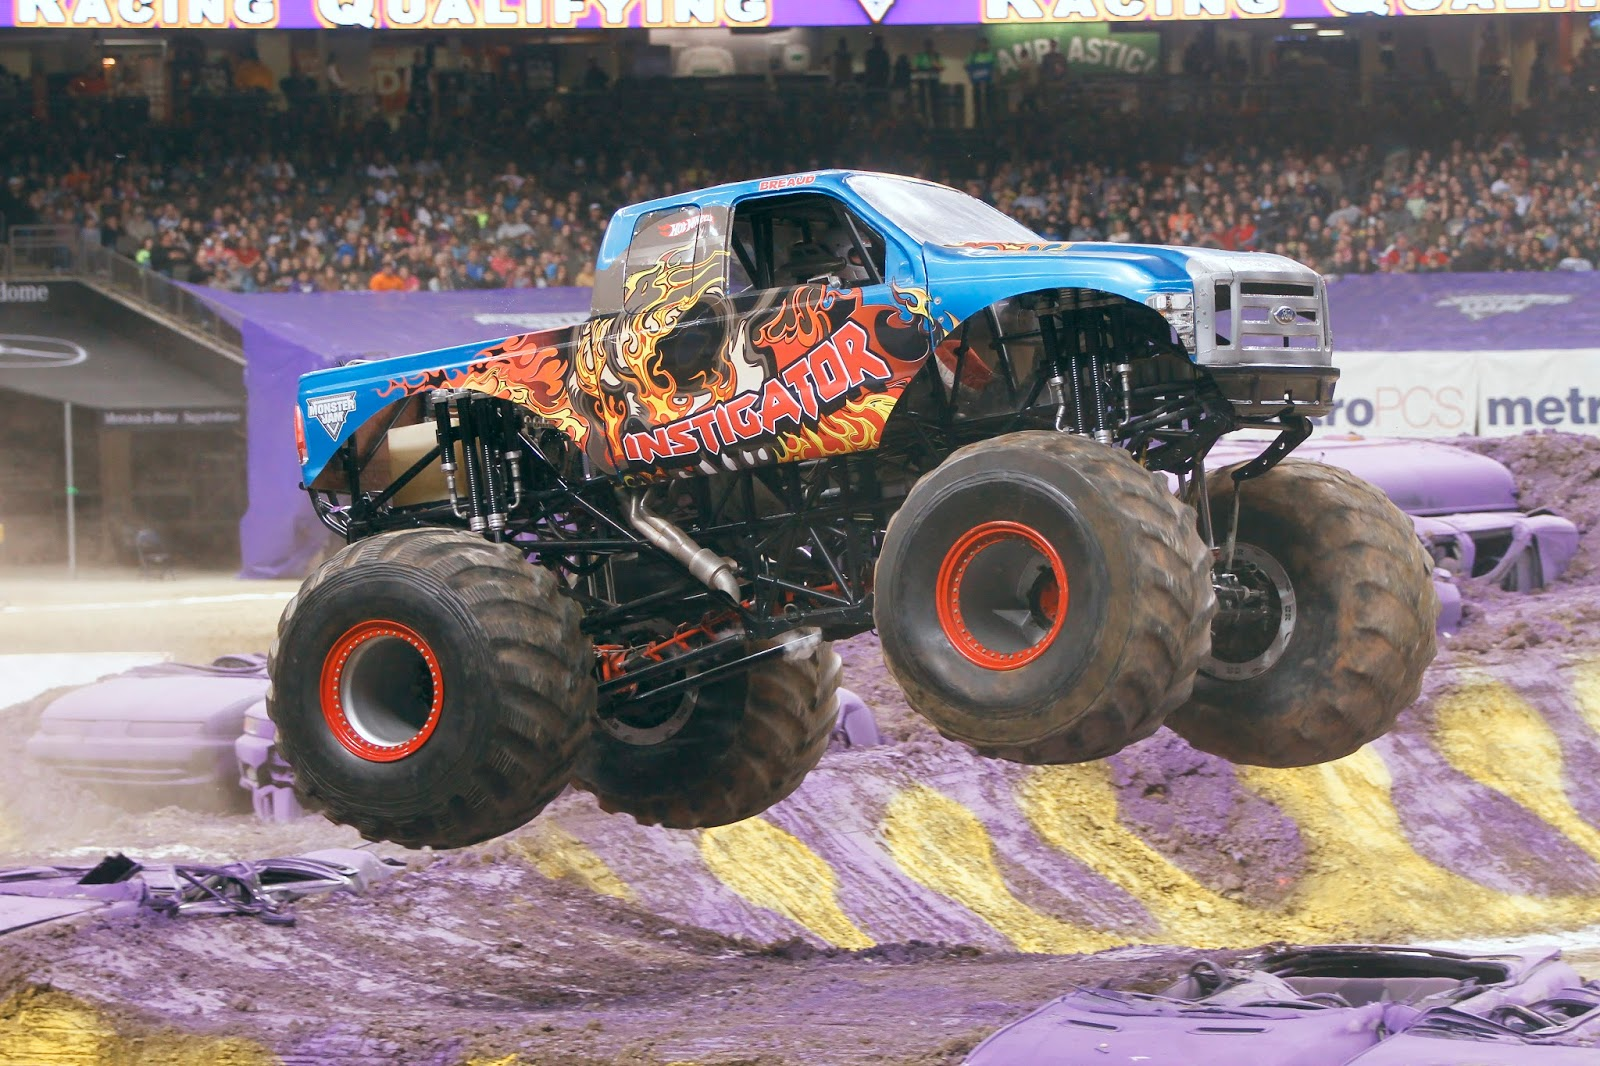 For ticket prices please visit ticketmaster at Monster Jam ATVs and the famous Monster Jam trucks. Monster Jam is one of the only sports where male and female world-class drivers, some generational rivals, are equals competing for the same championship on the same track. Following racing, new in across all Monster Jam events, fans in.